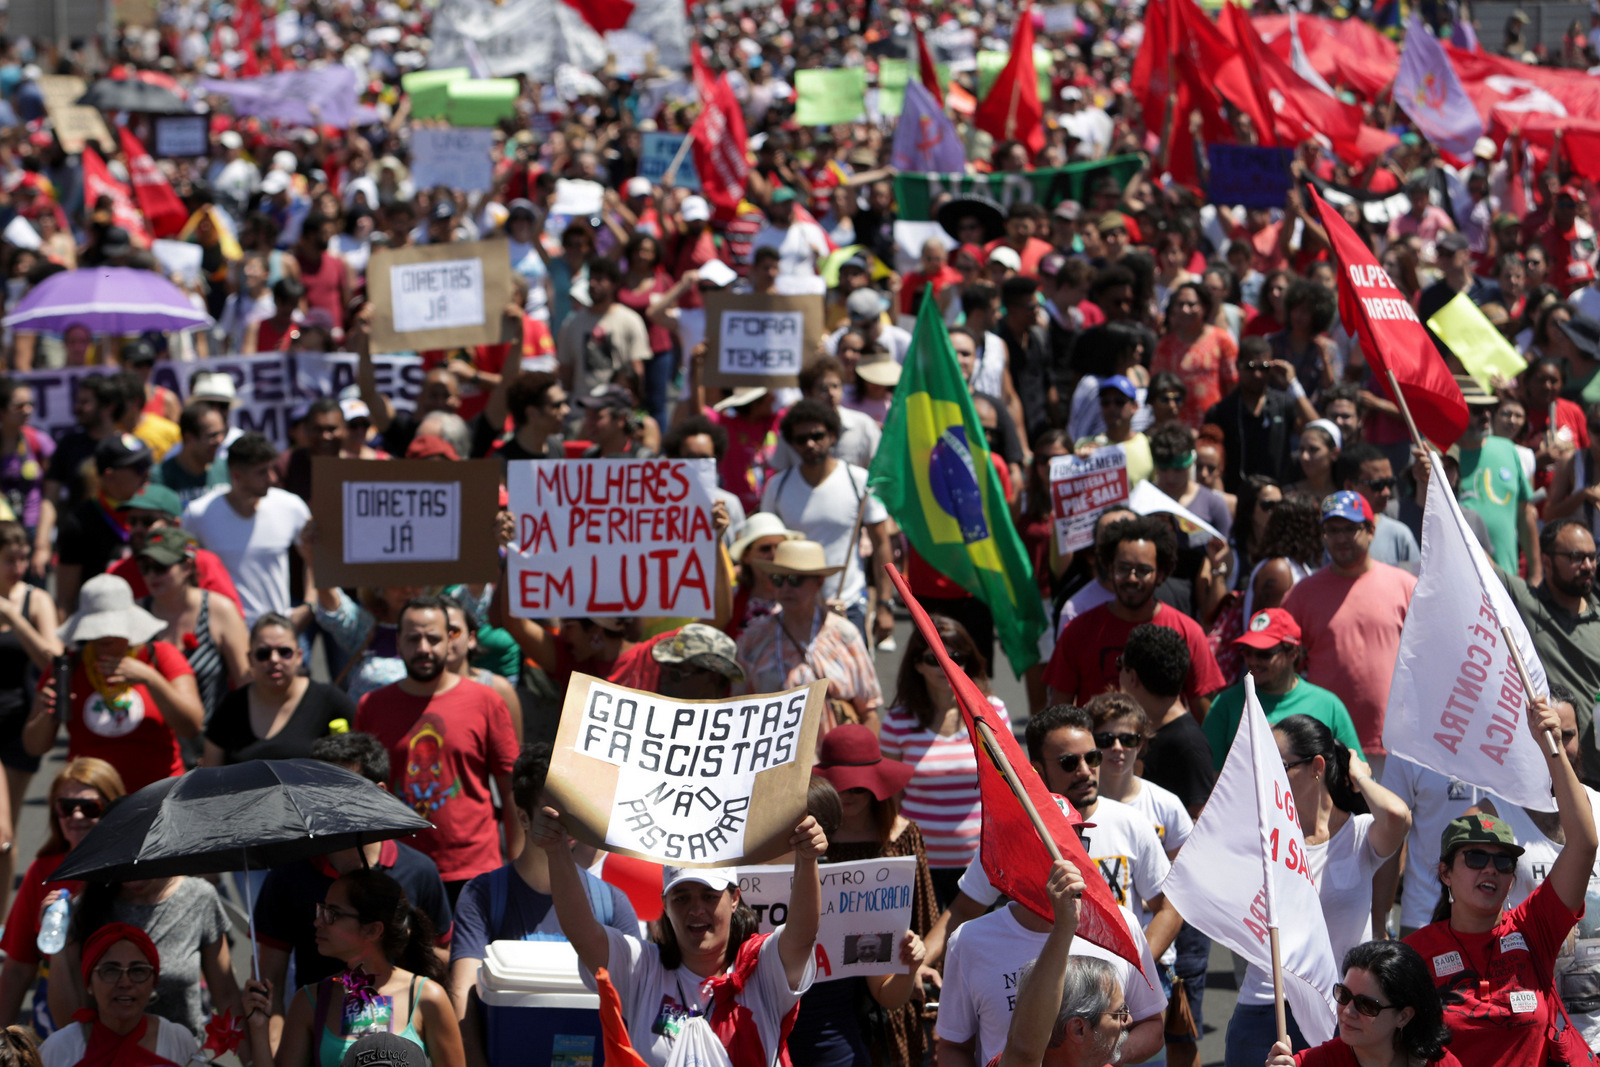 Demonstrators protest Brazil's President Michel Temer after a military Independence Day parade in Brasilia, Brazil, Wednesday, Sept. 7, 2016. (AP/Eraldo Peres)